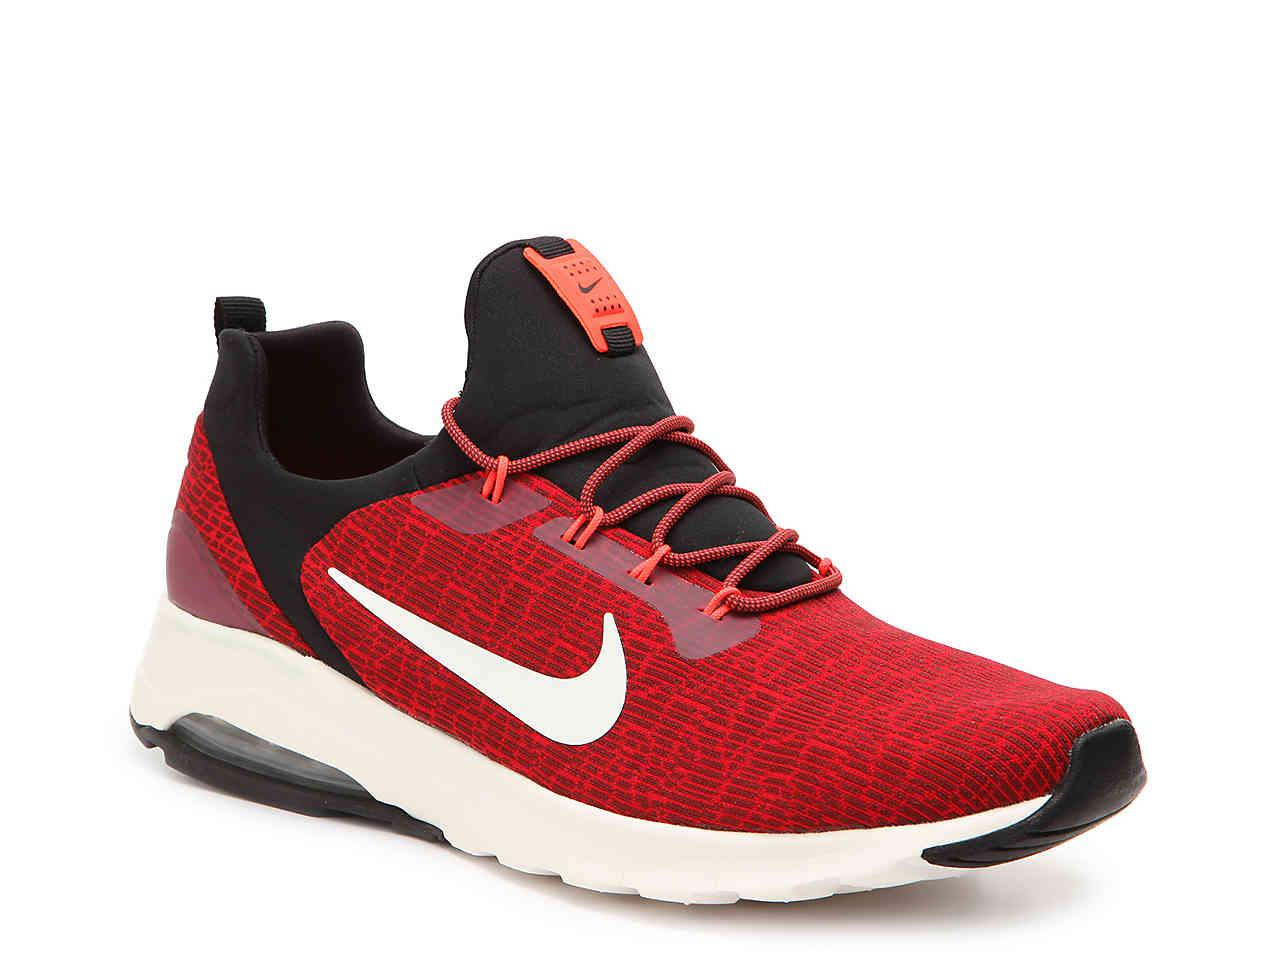 e5b928c03a50 Lyst - Nike Air Max Motion Racer Sneaker in Red for Men